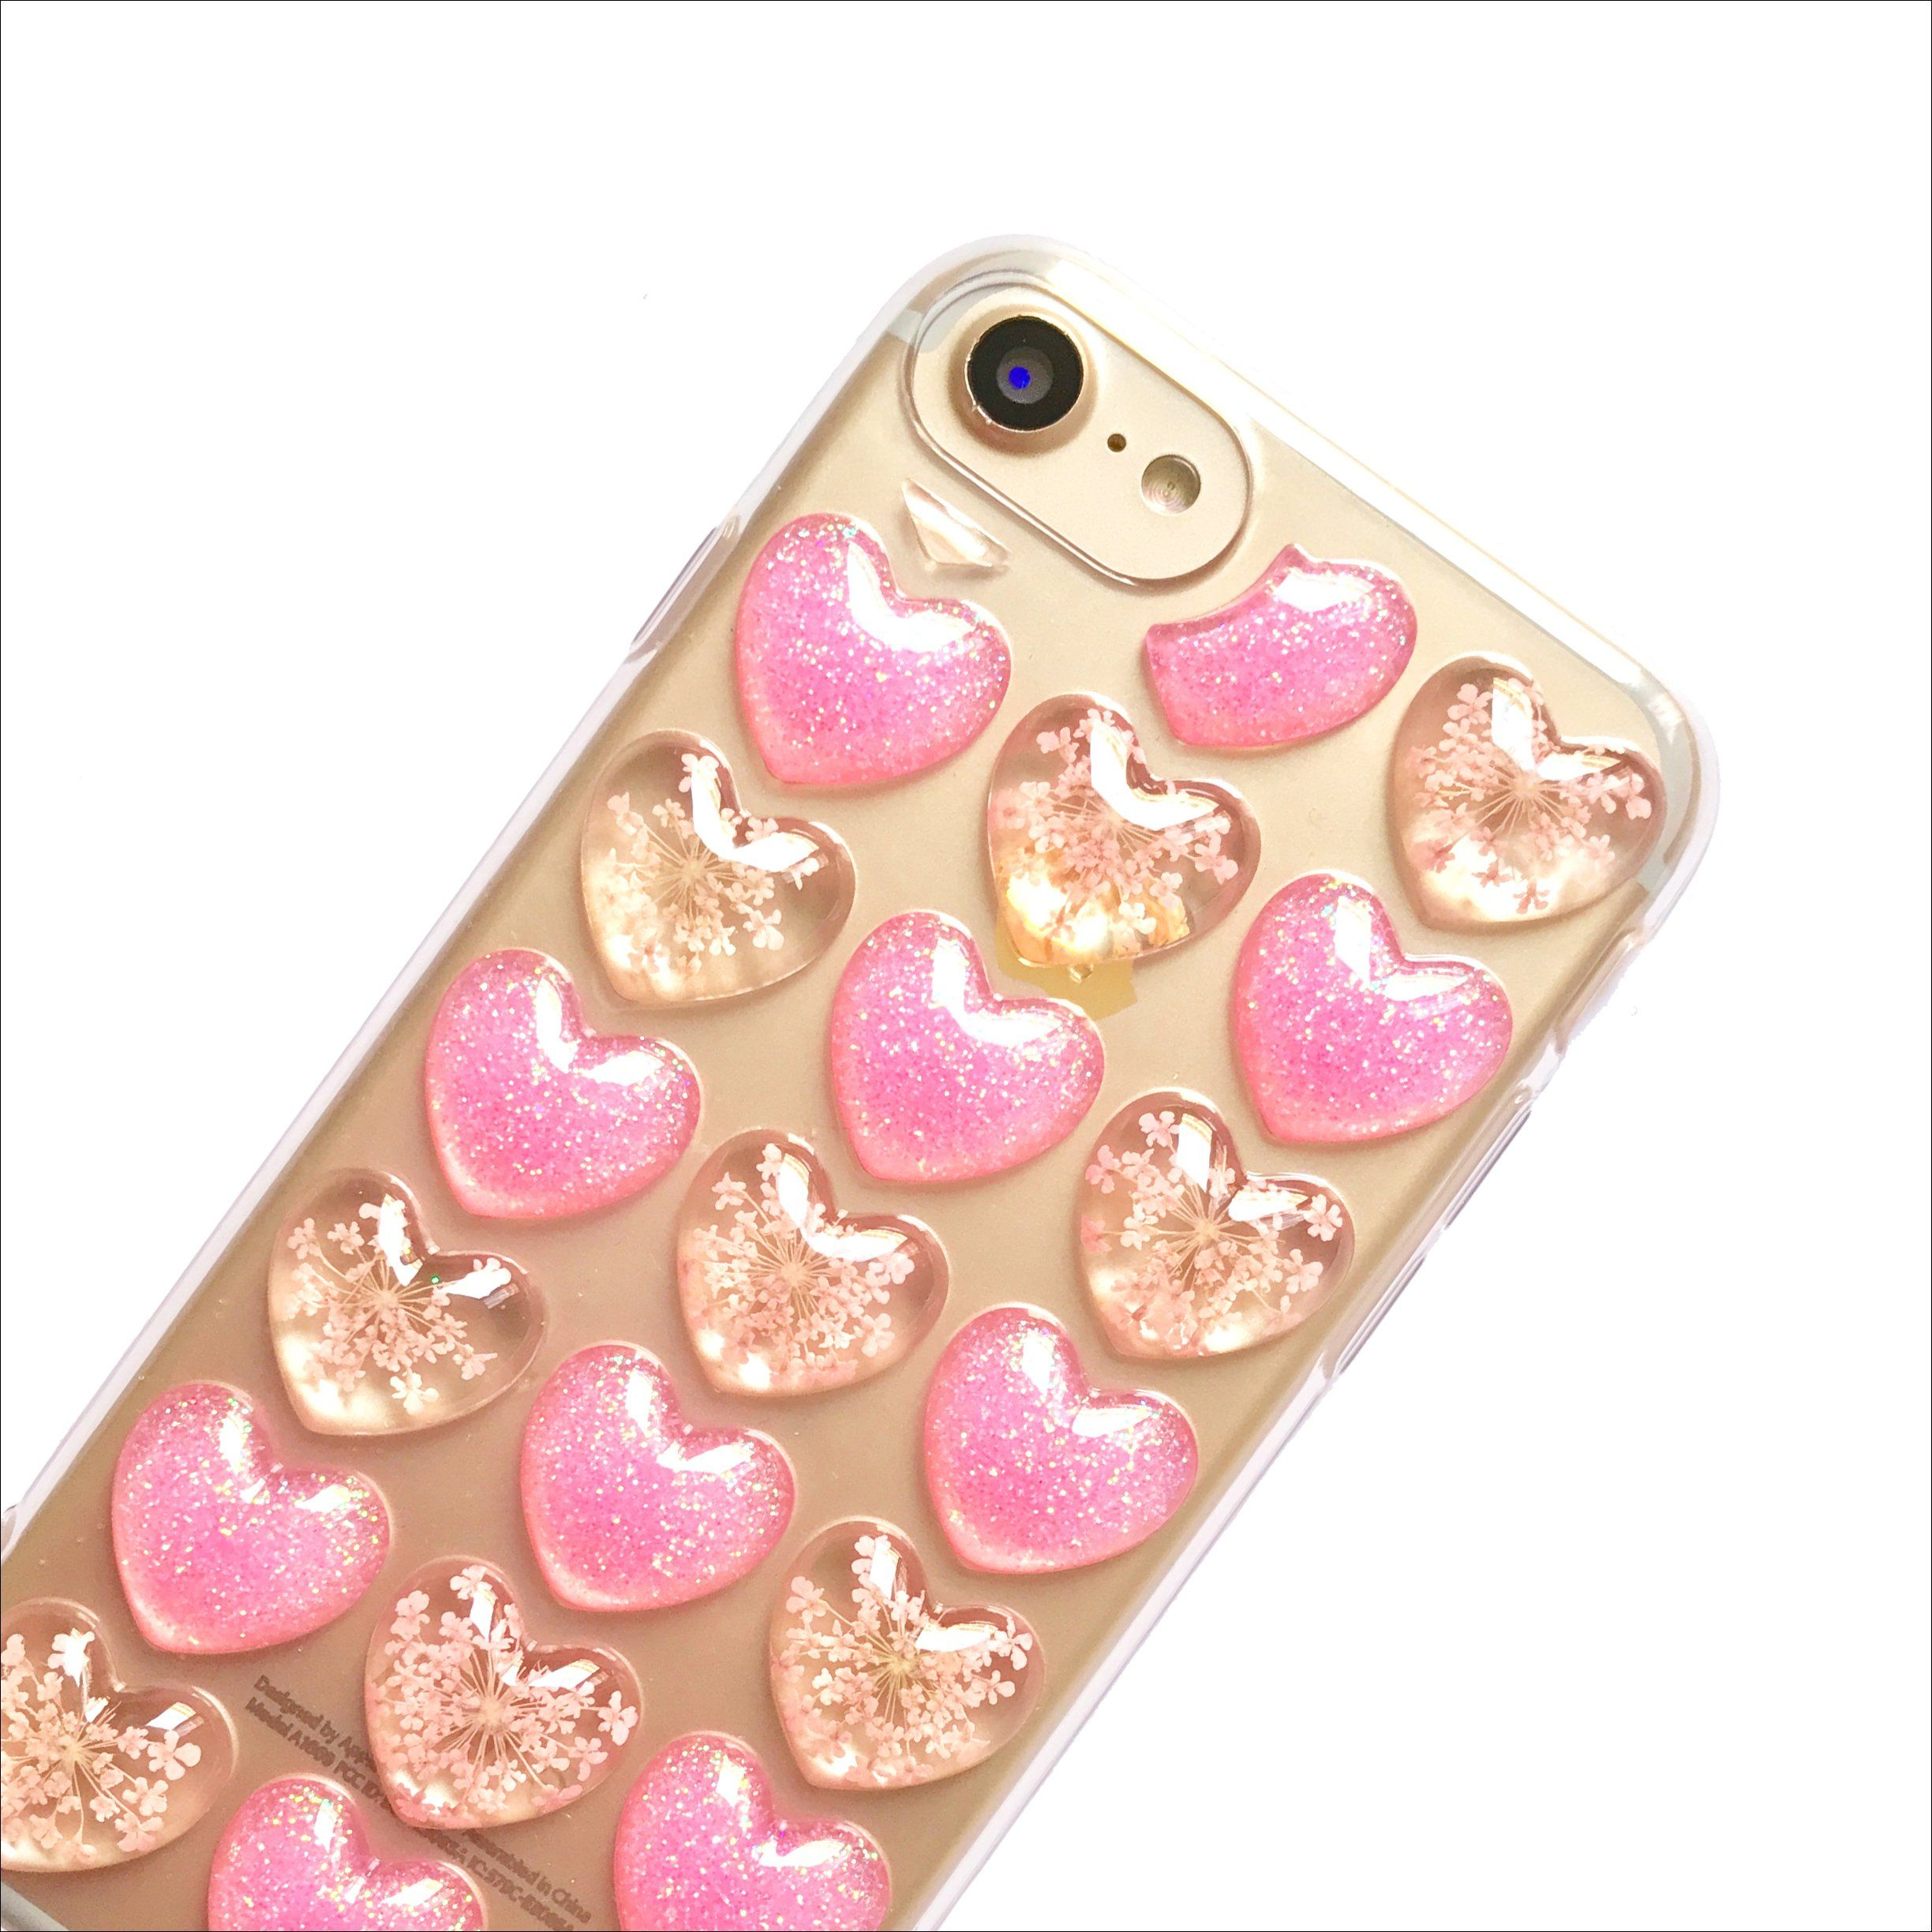 Pressed Pink Floral & Glitter Bubble Hearts Phone Case